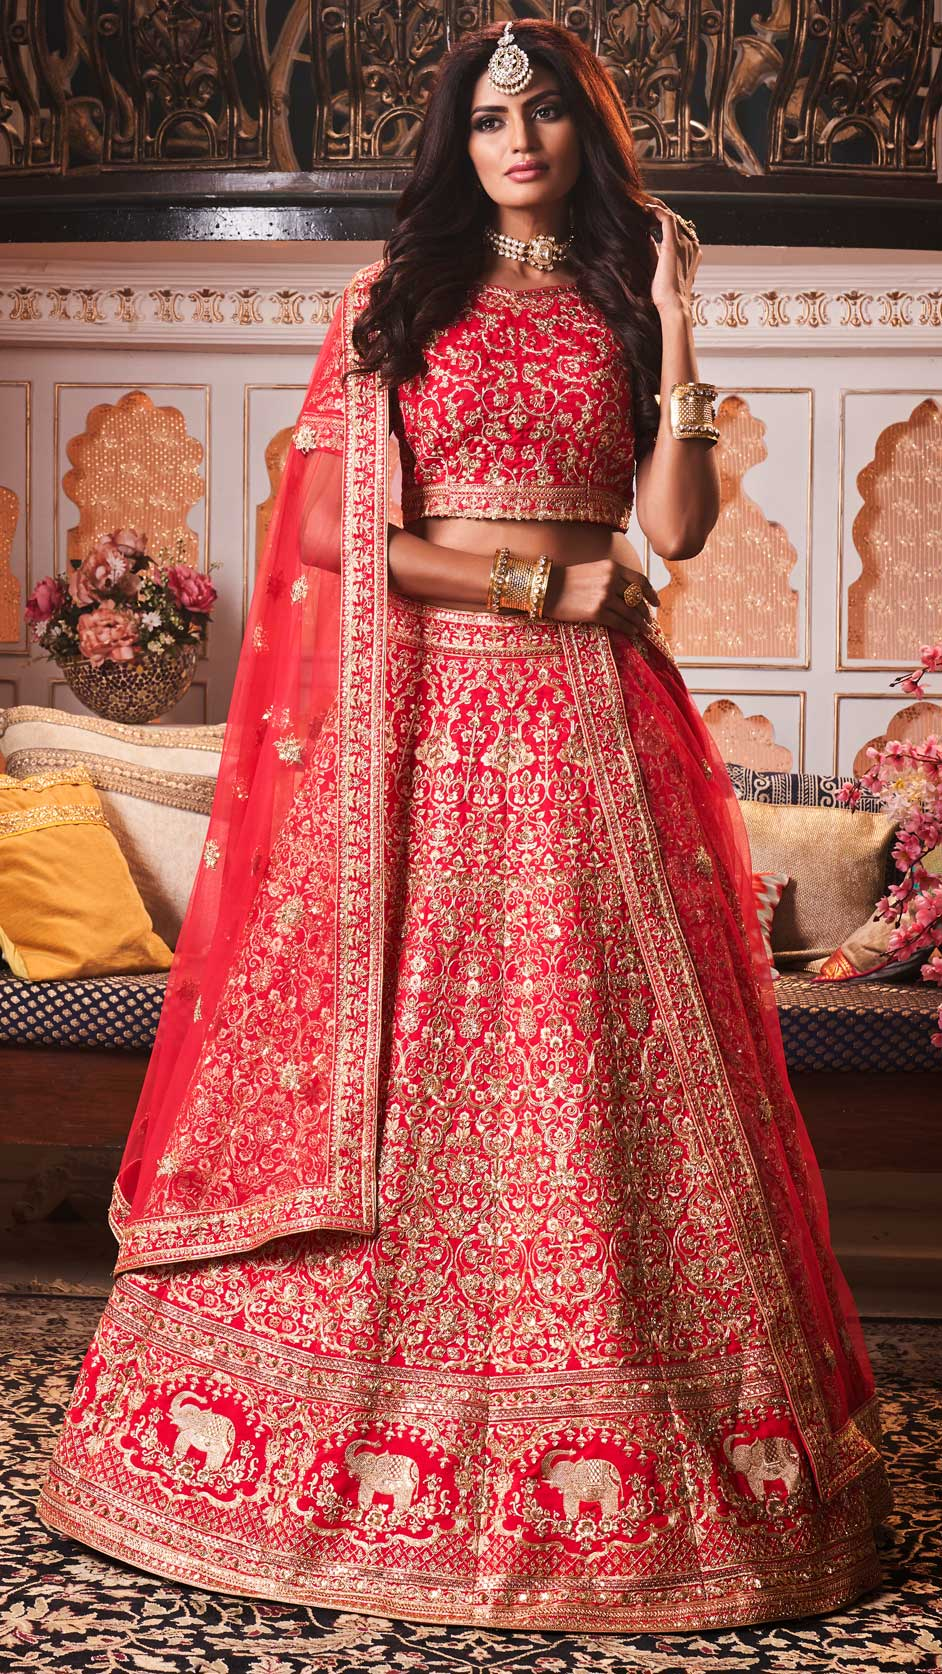 5 Ideal Bridal Wedding Lehengas for the Gorgeous Bride-To-Be